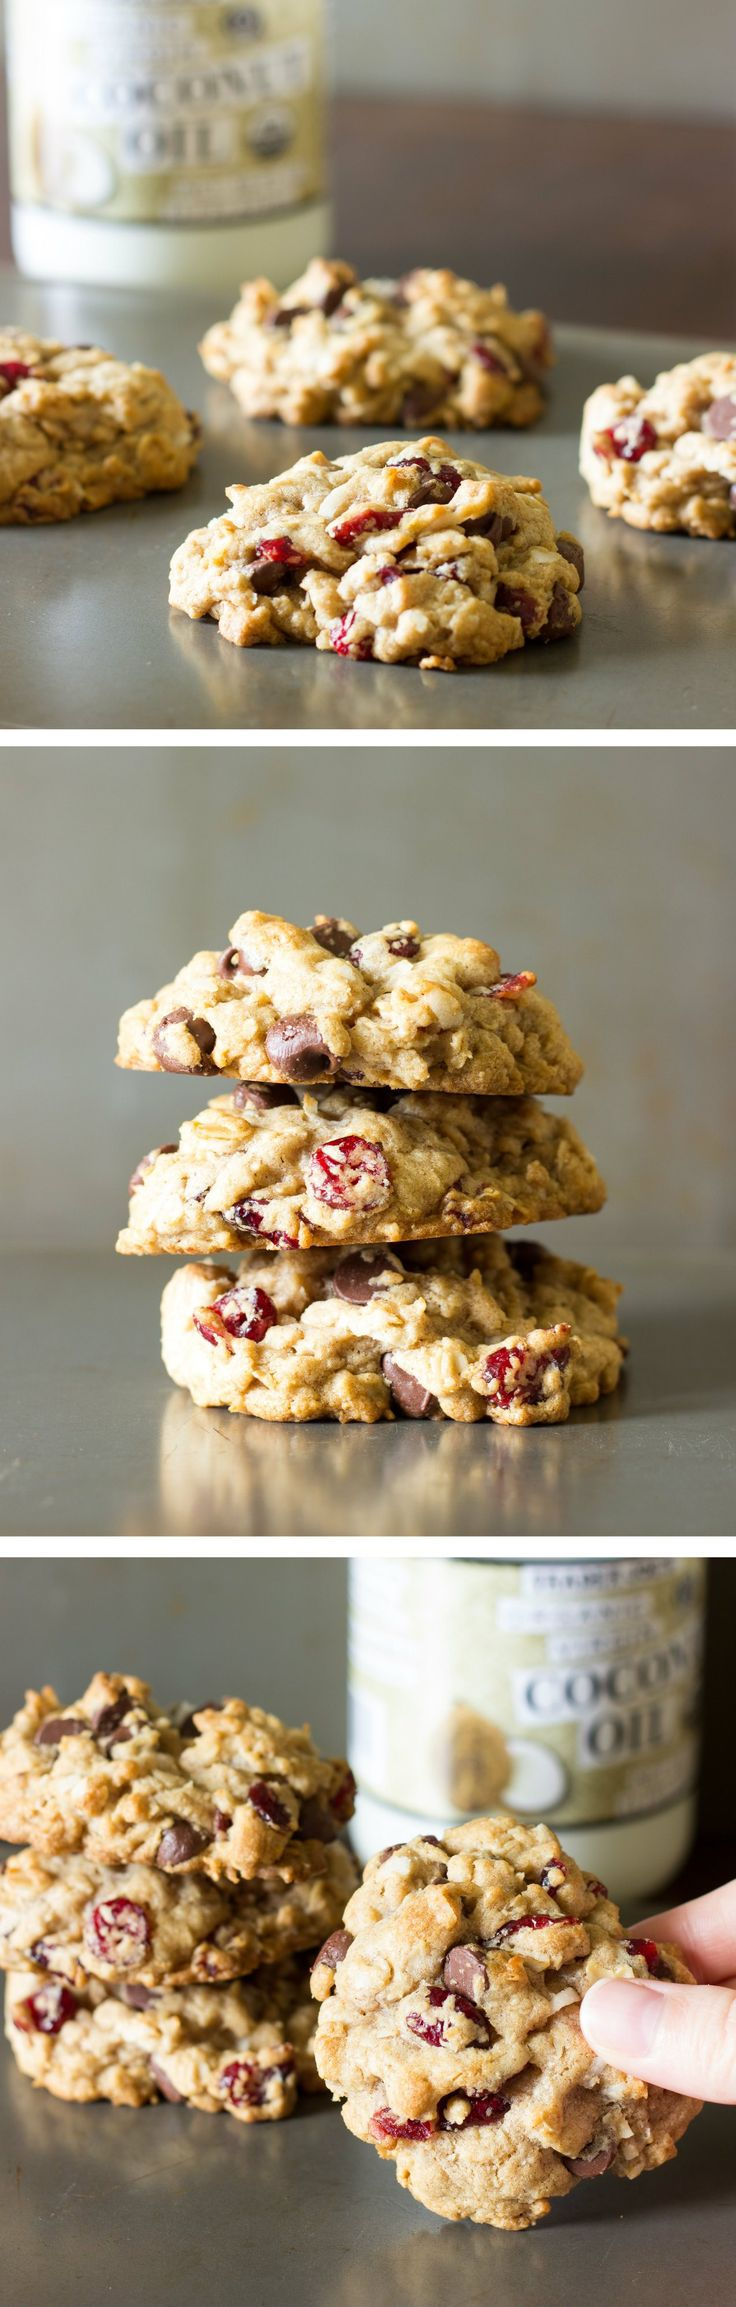 Cookies loaded with chocolate chips, oats, dried cranberries, shredded coconut, and coconut oil instead of butter.